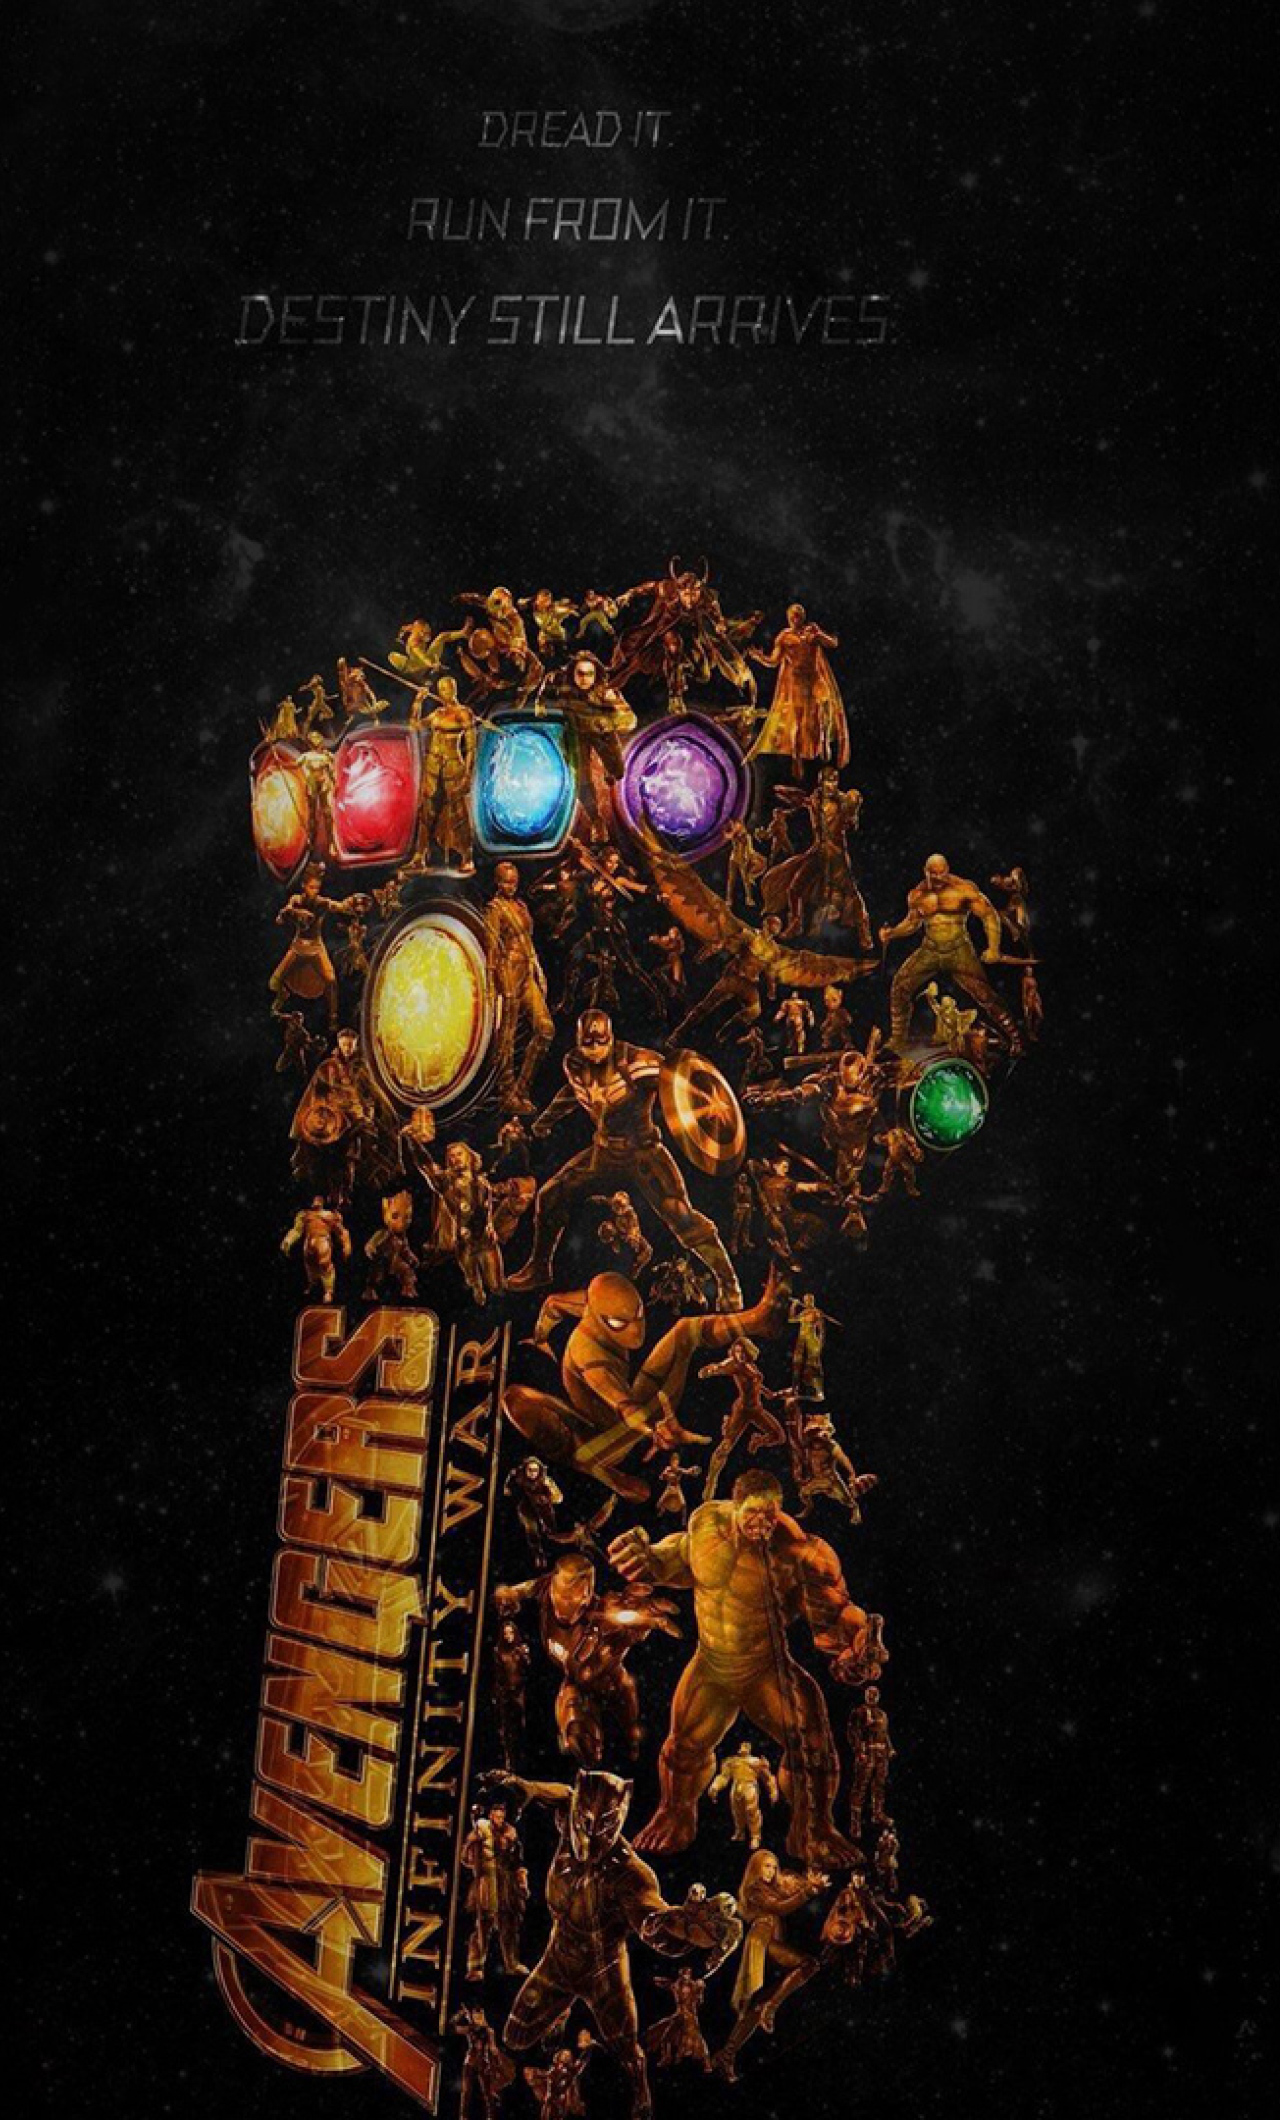 Download Avengers Infinity War Latest Poster 240x320